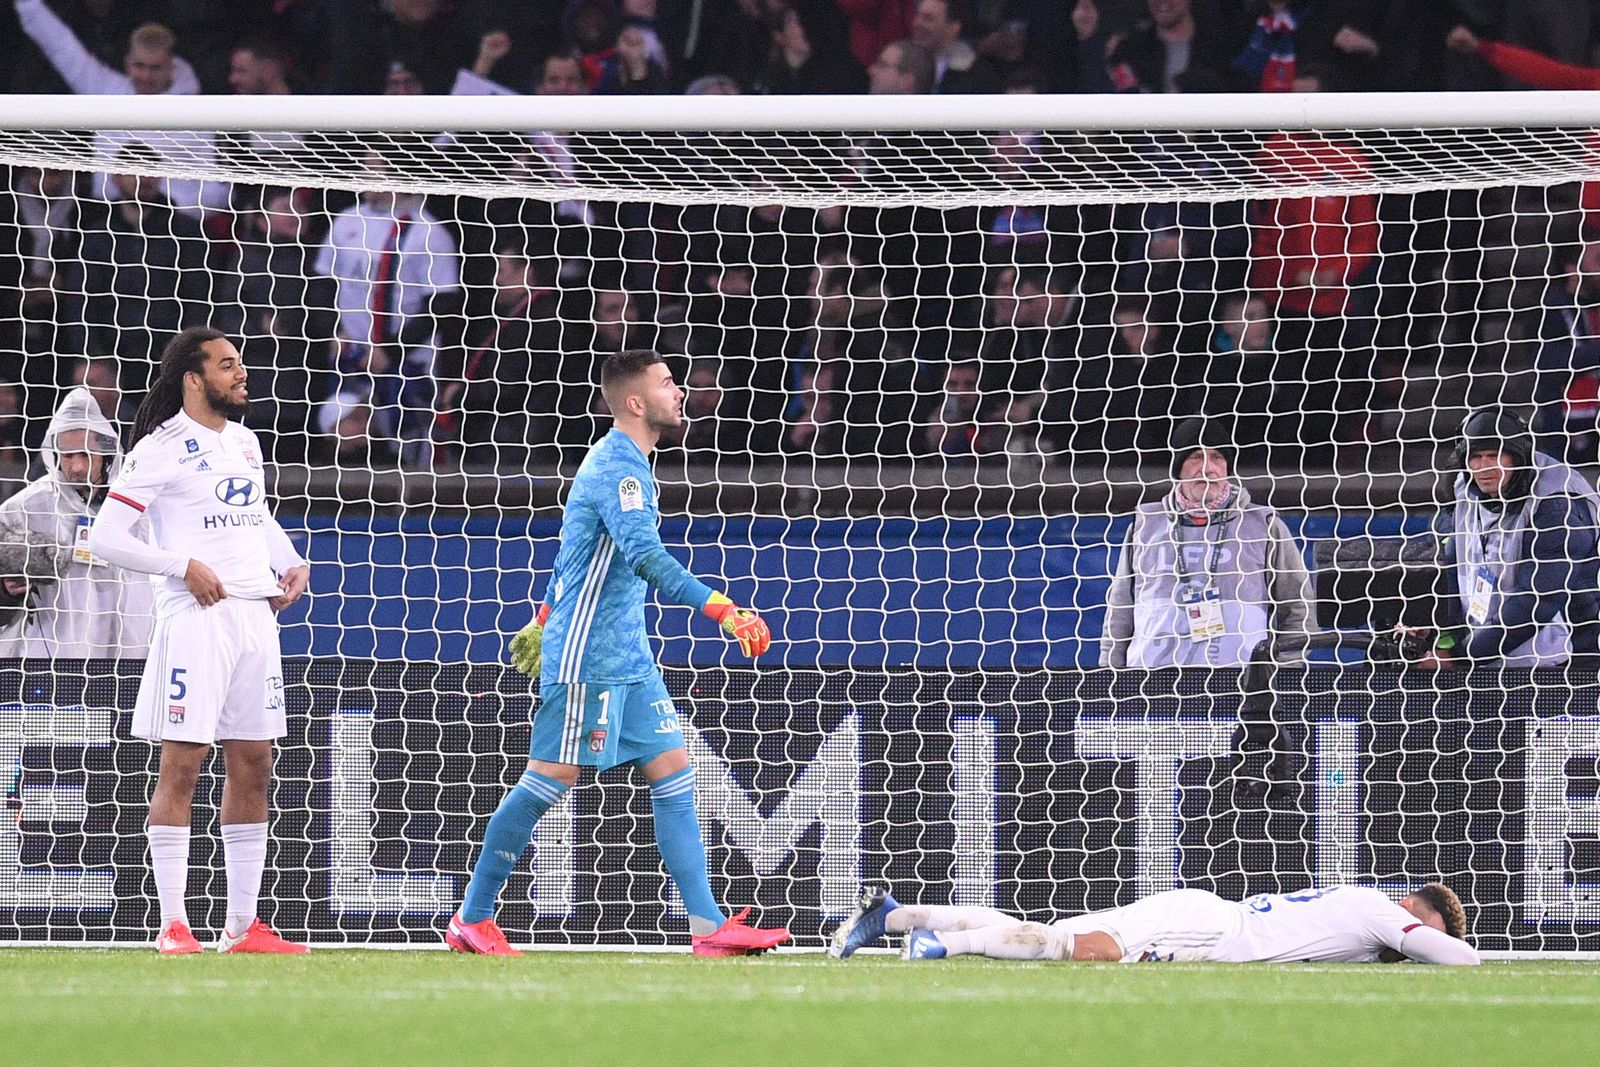 DECEPTION - 01 ANTHONY LOPES (OL) - 05 JASON DENAYER (OL) FOOTBALL : Paris SG vs Lyon - Ligue 1 Conforama - 09/02/2020 F